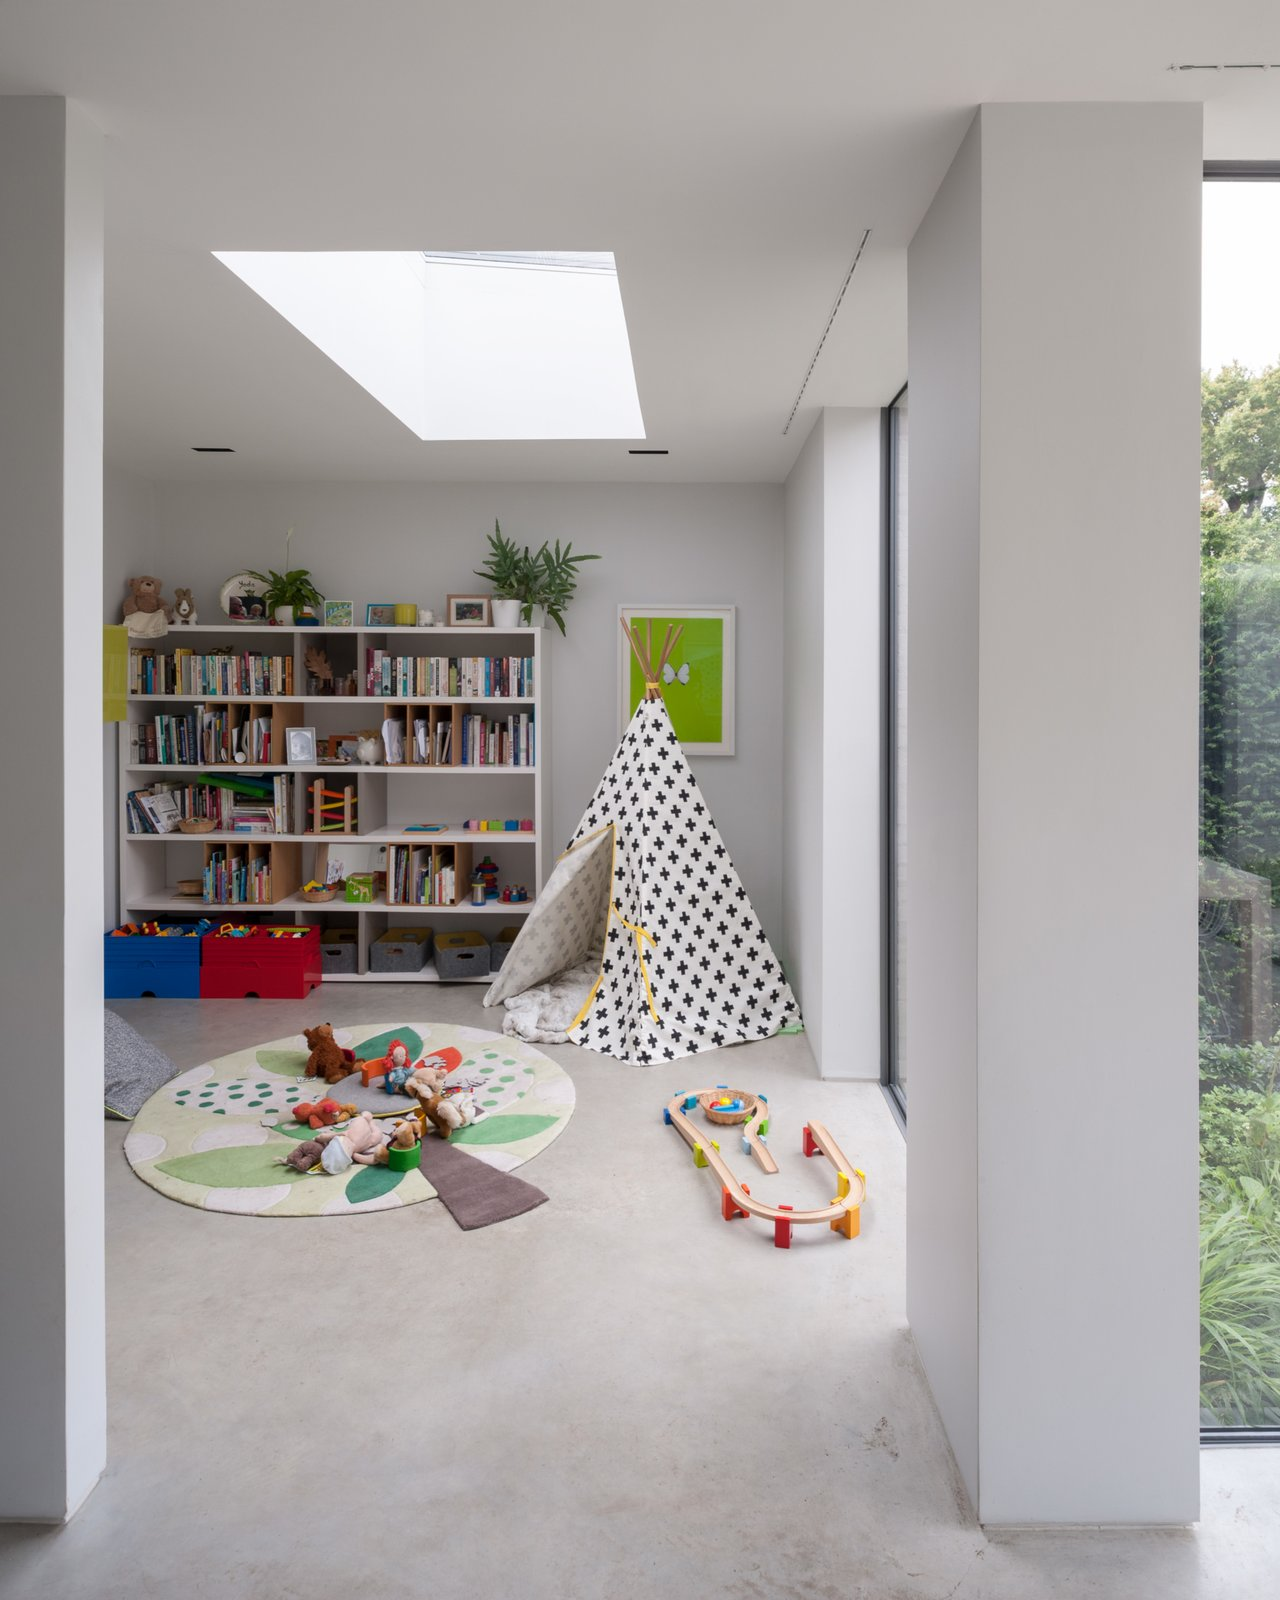 Kids Room, Playroom Room Type, Bookcase, and Toddler Age A children's playroom on the ground floor.  Photos from A Grass-Topped Addition in England Connects Home and Garden